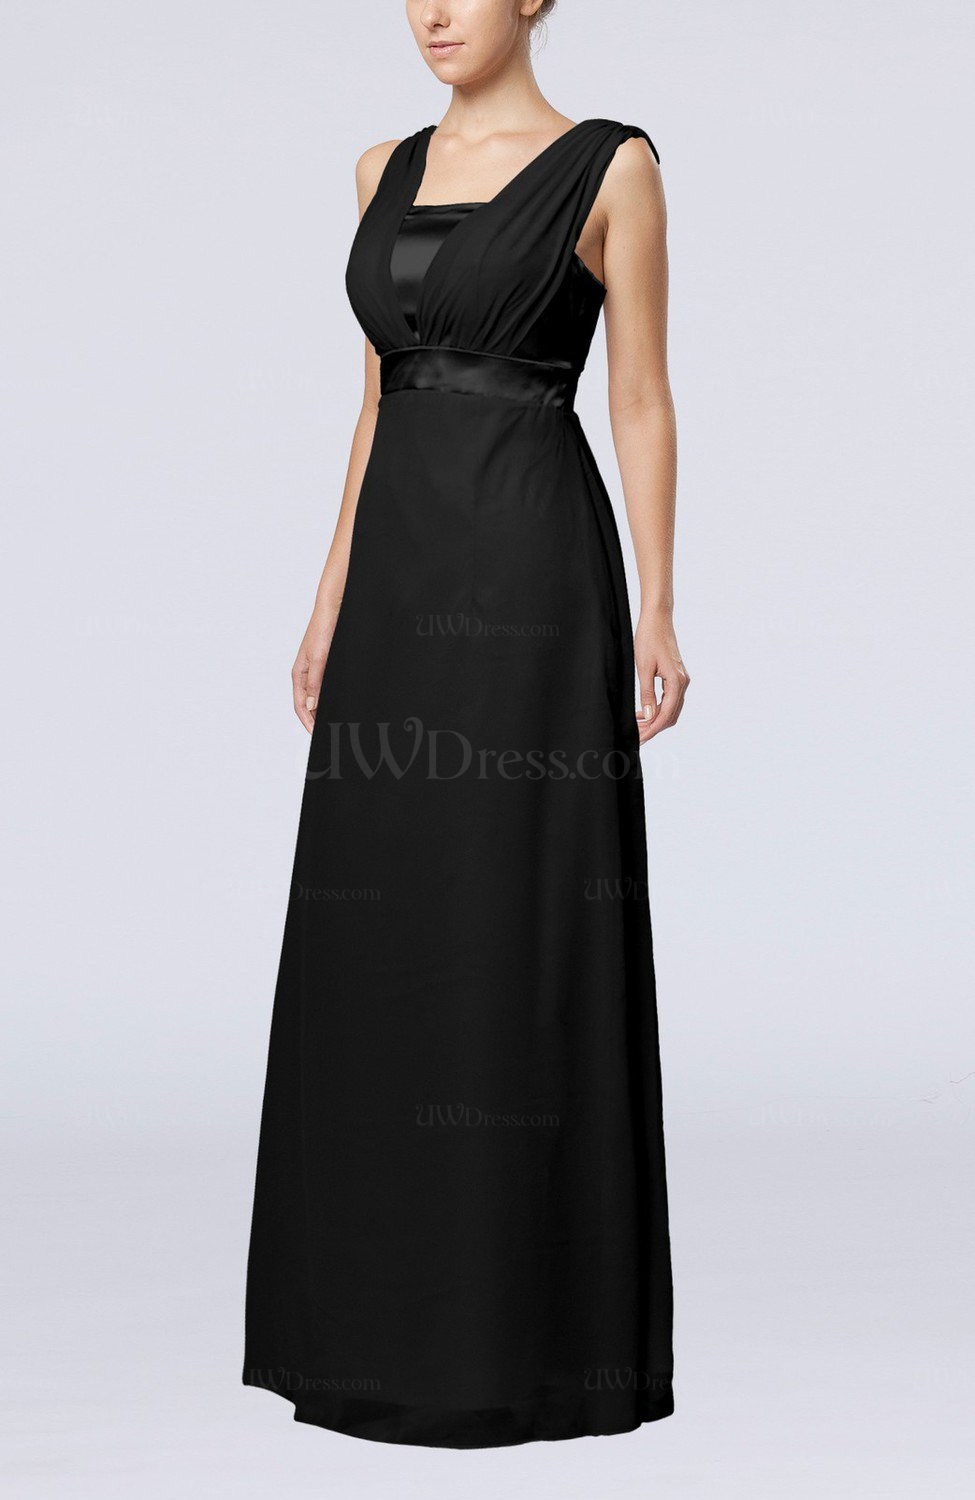 black elegant empire thick straps sleeveless chiffon floor length wedding guest dresses. Black Bedroom Furniture Sets. Home Design Ideas